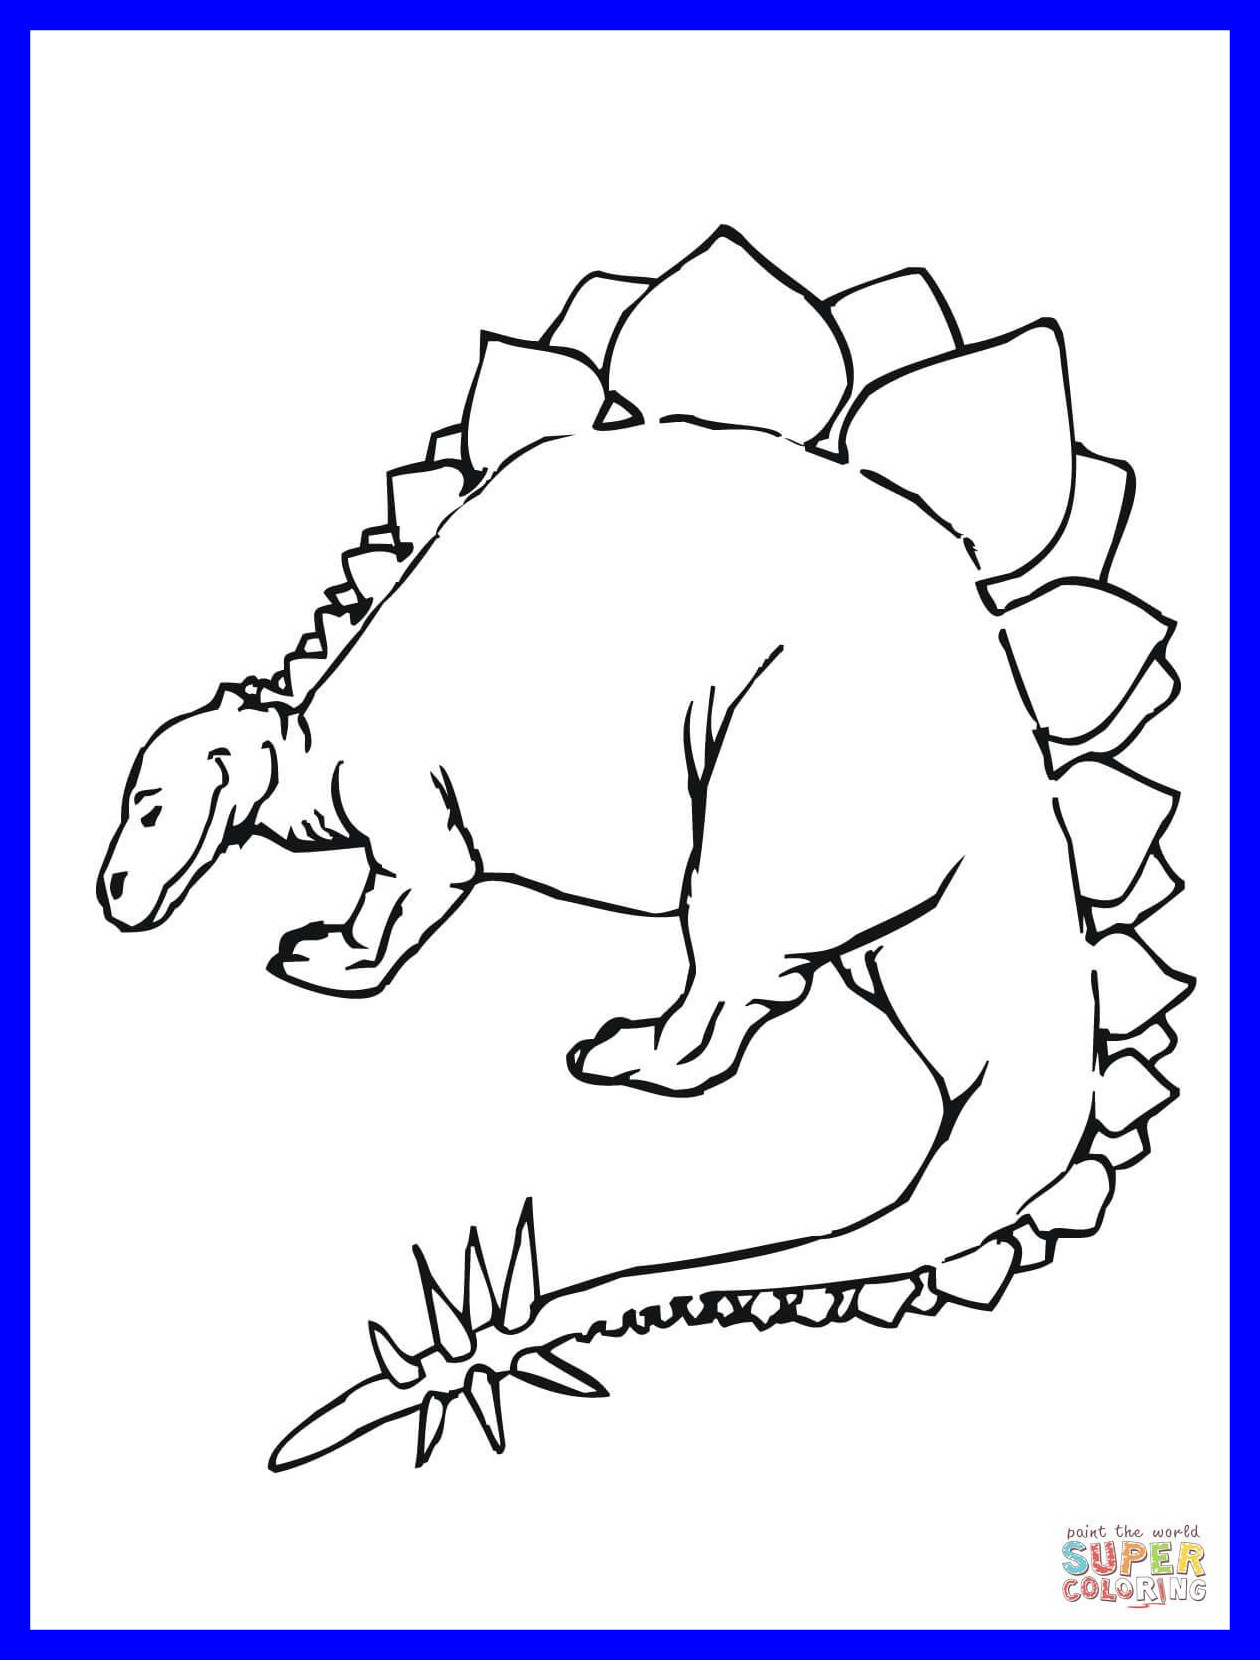 1260x1660 Shocking Stegosaurus Dinosaur Coloring Page Printable